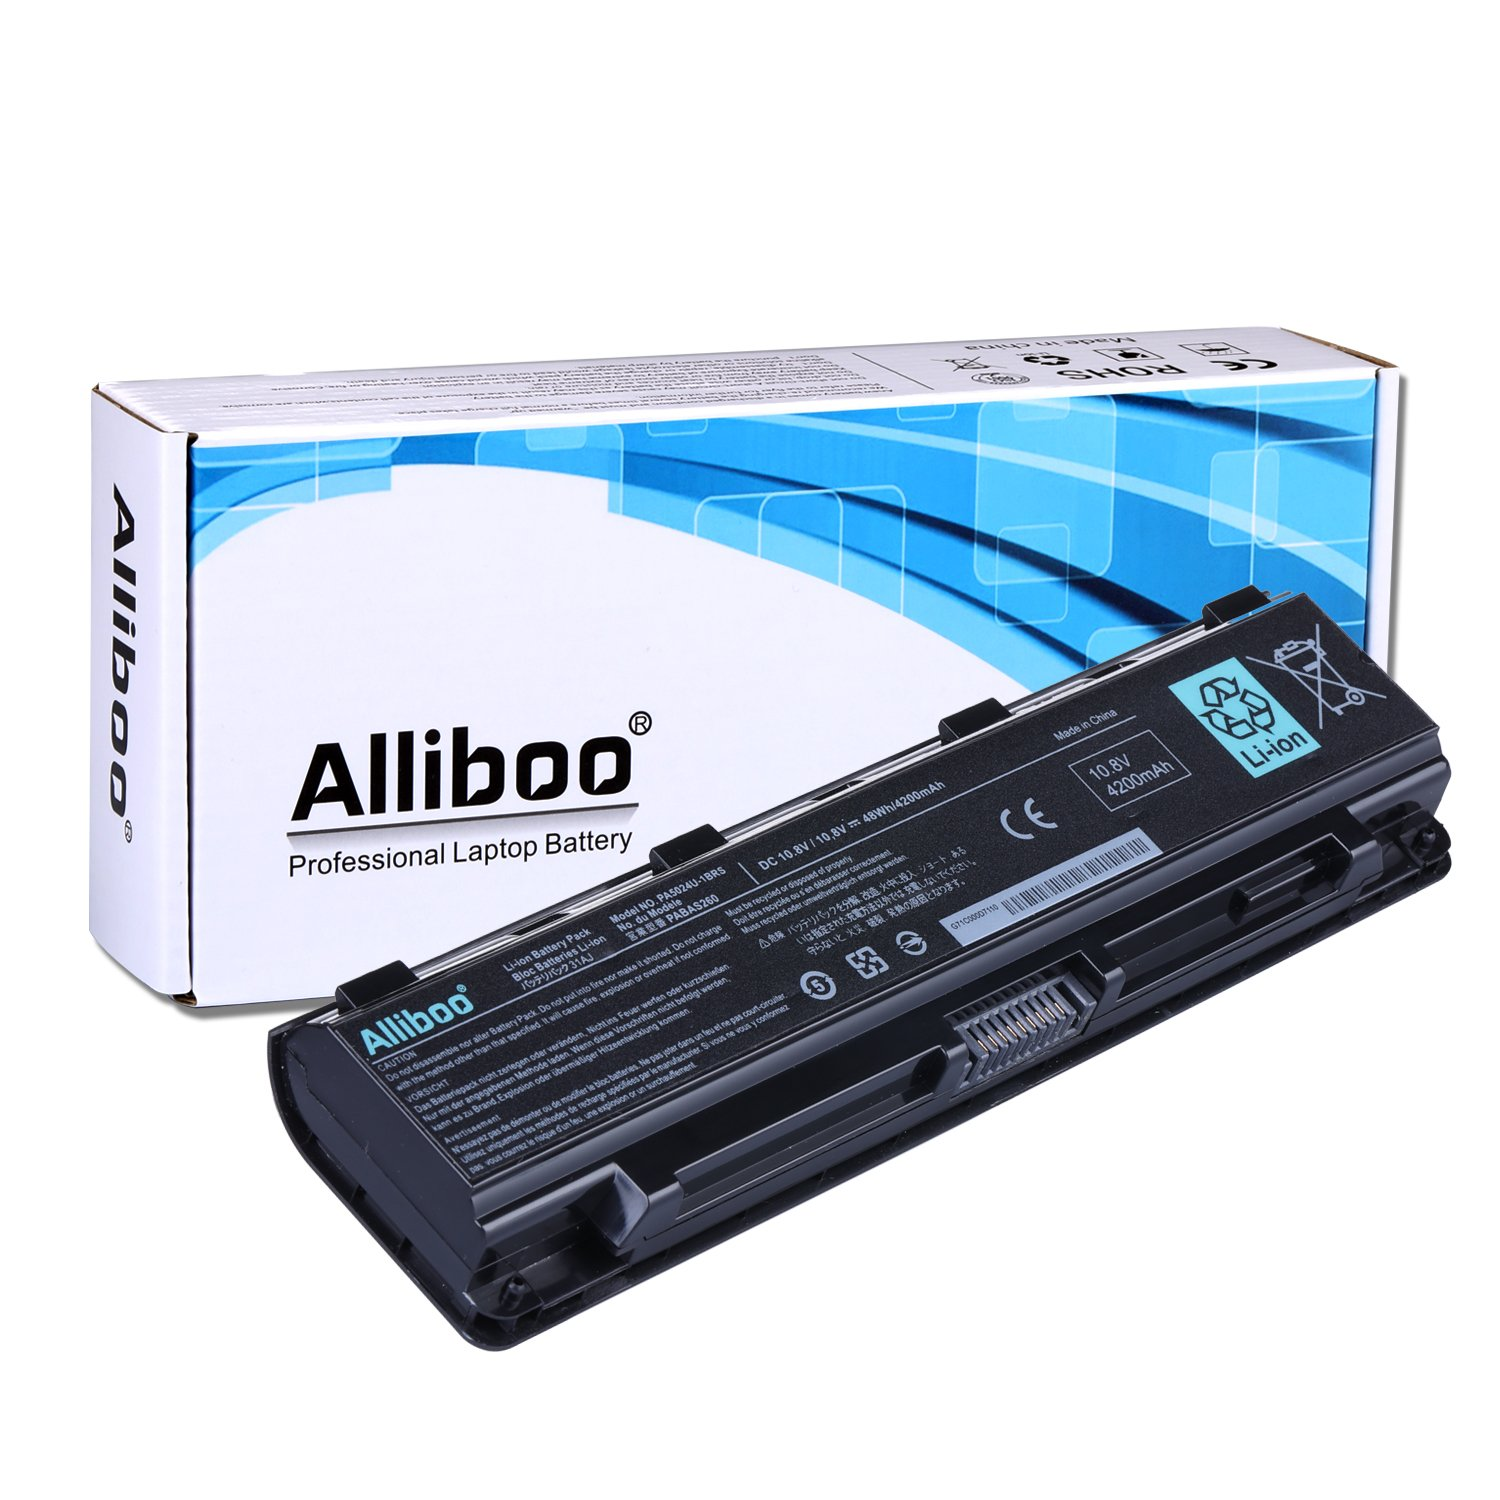 Alliboo High Performance Laptop Battery for Toshiba PA5024U-1BRS PA5023U-1BRS PA5025U-1BRS PA5026U-1BRS PA5027U-1BRS PA5109U-1BRS PABAS260, Fit with Satellite C50 C55 C800 C805 C845